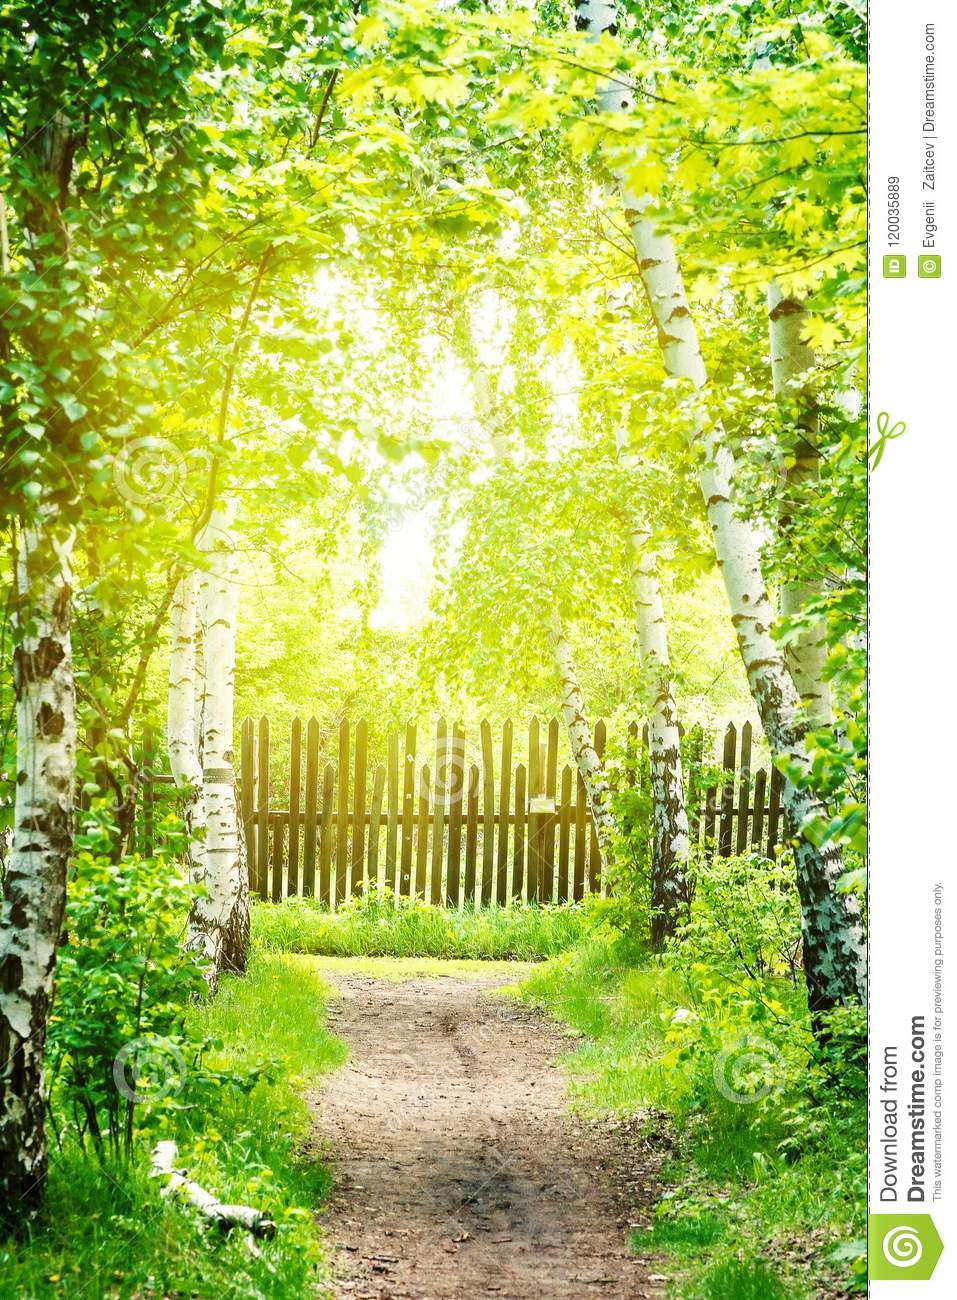 Footpath Goes Through Birch Grove. Wooden Fence. Sunlight. Summer